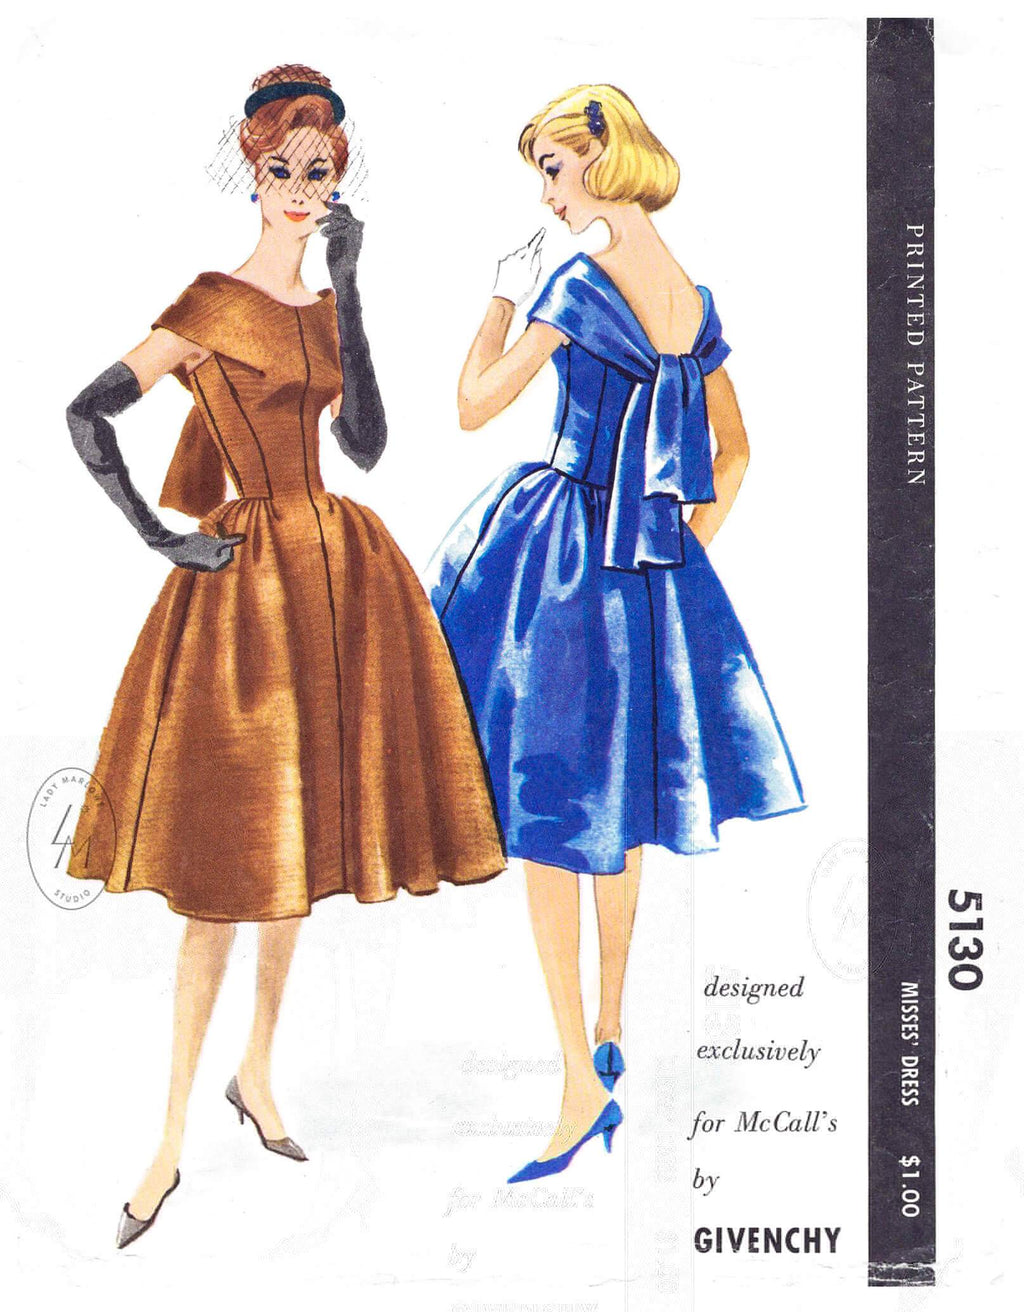 1950s 1959 McCall's 5130 Givenchy designer vintage sewing pattern cocktail dress bouffant skirt scarf neckline reproduction